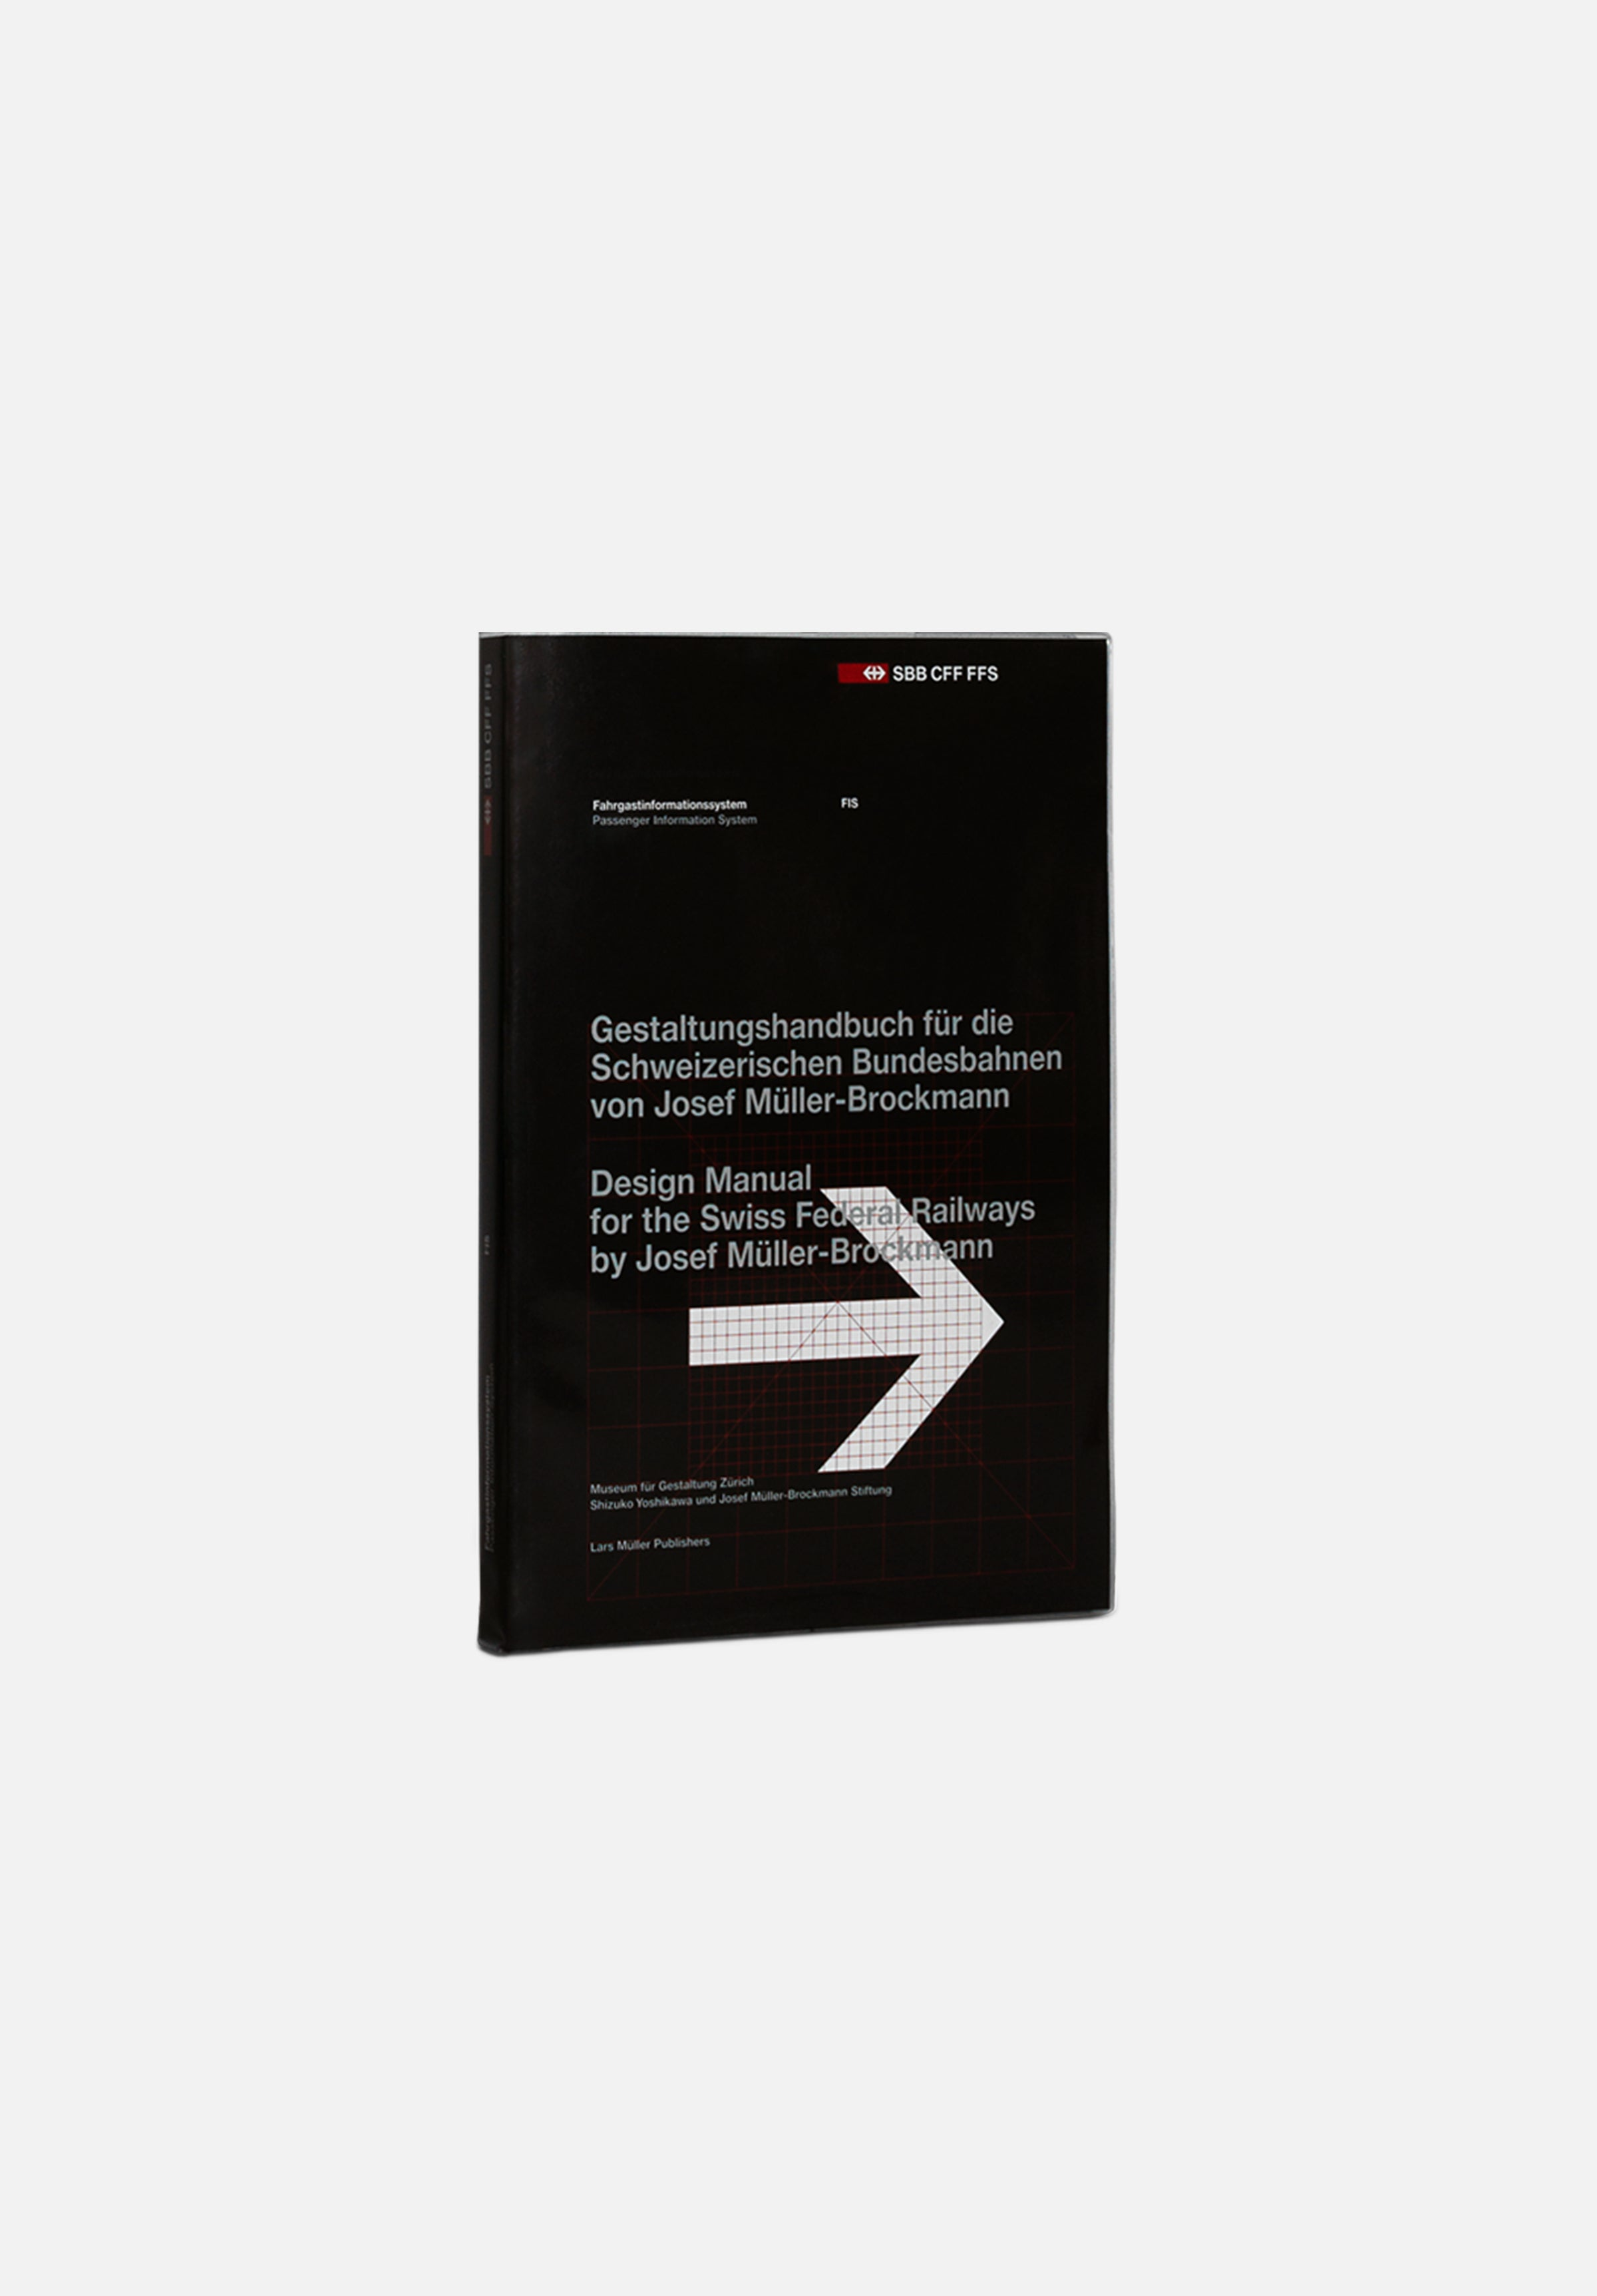 Design Manual for the Swiss Federal Railways